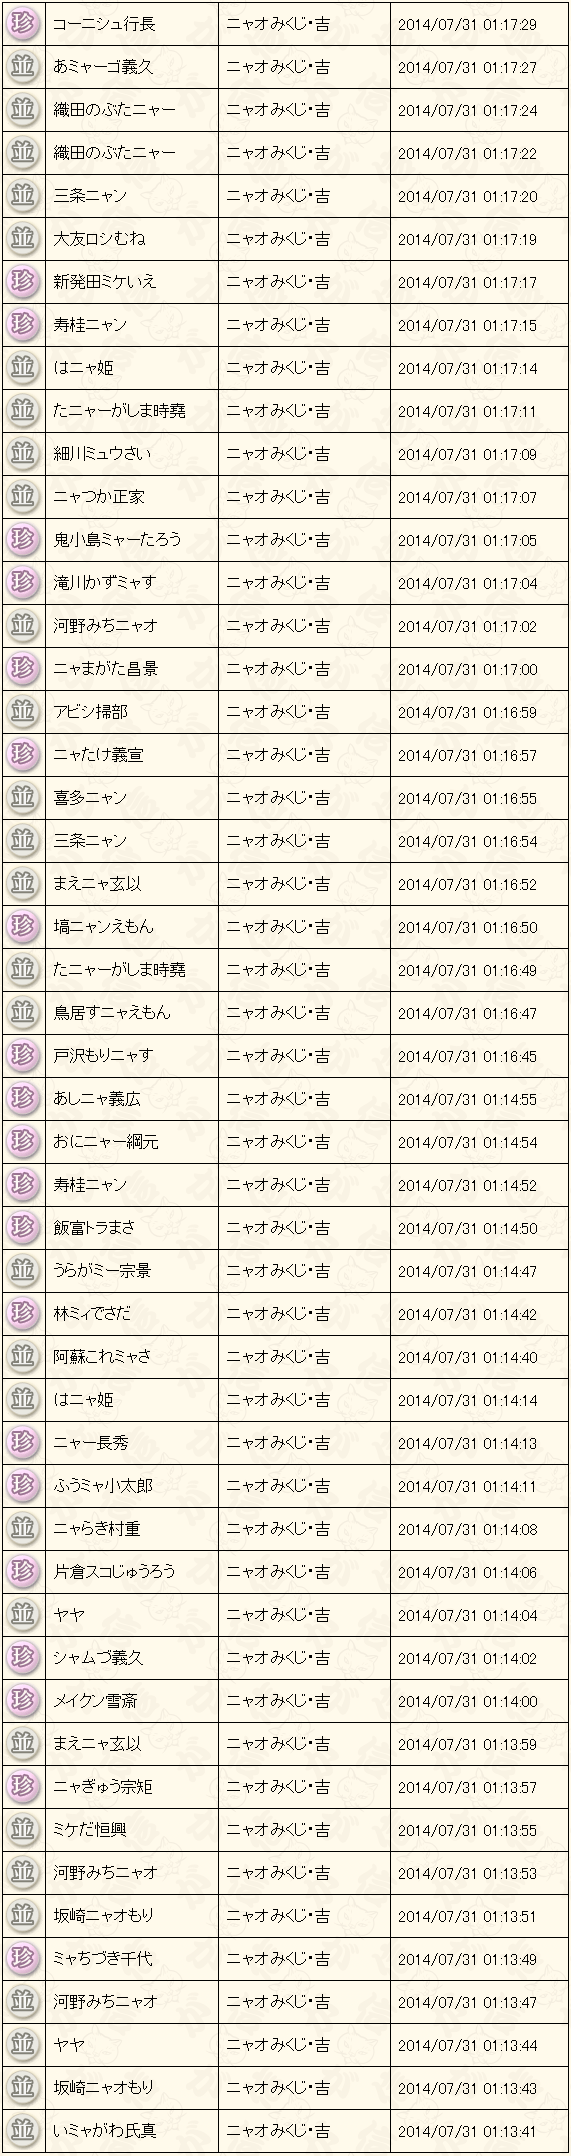 20140731012409698.png